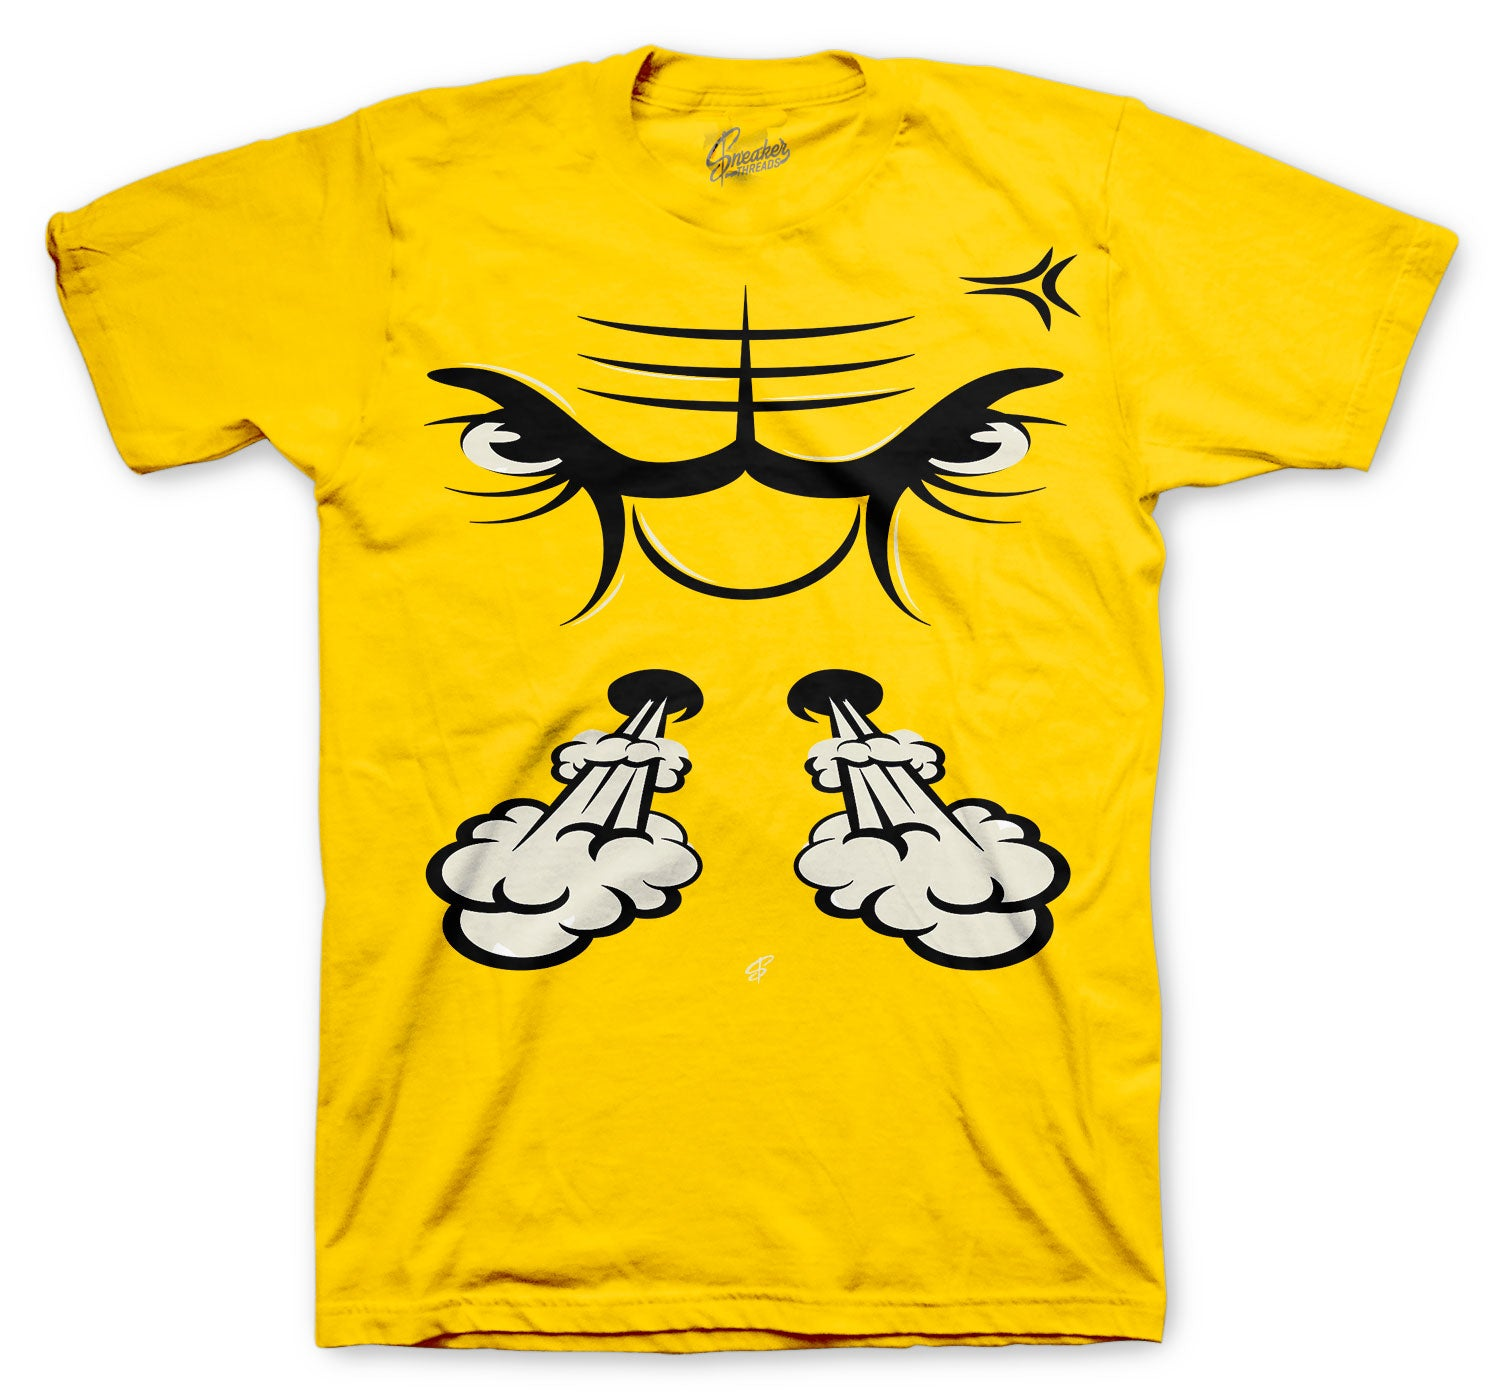 University gold Jordan 12 sneaker collection matching guys tee collection